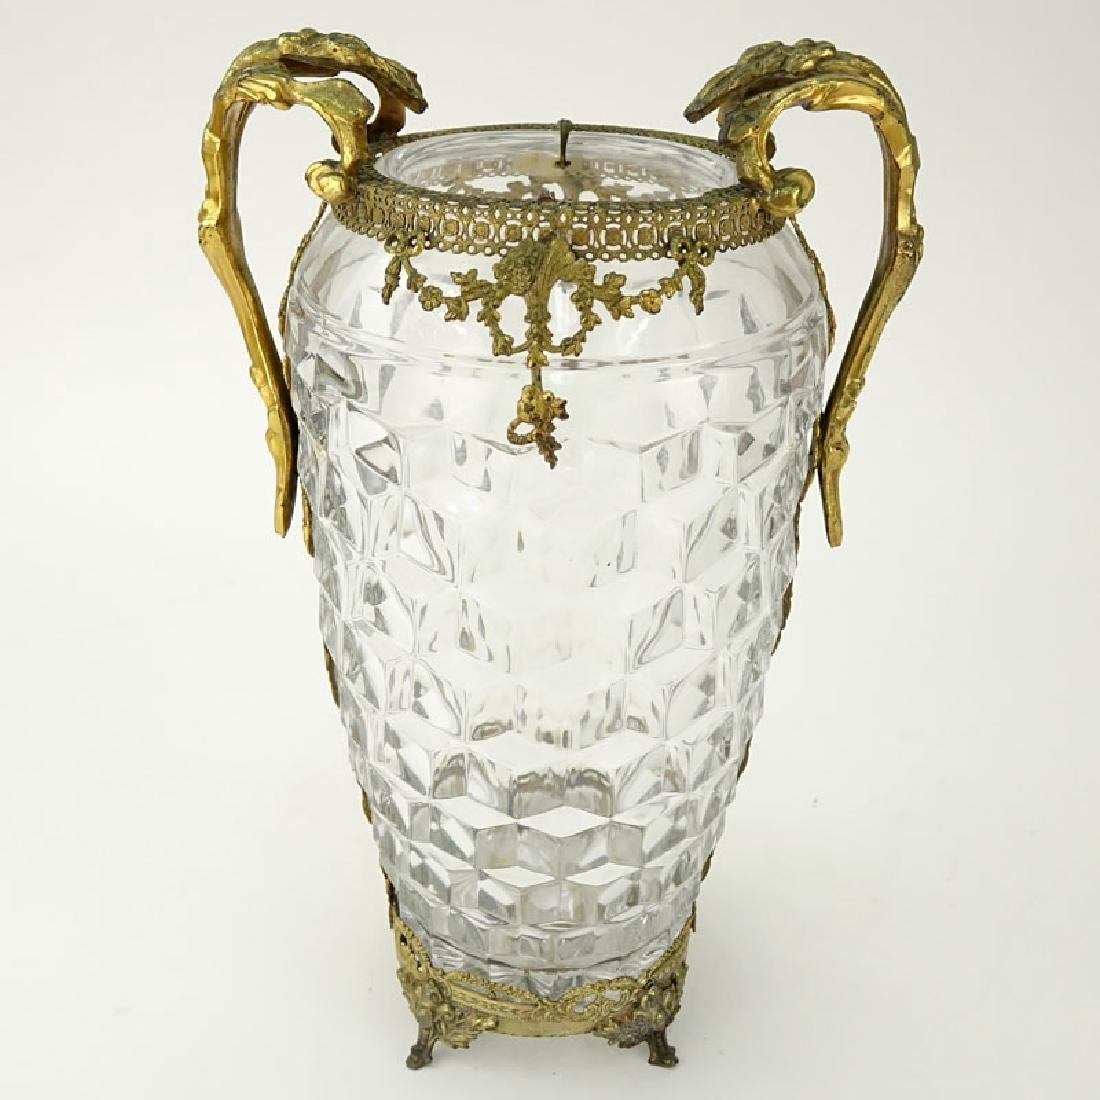 Antique French Baccarat Style Glass Vase with Brass